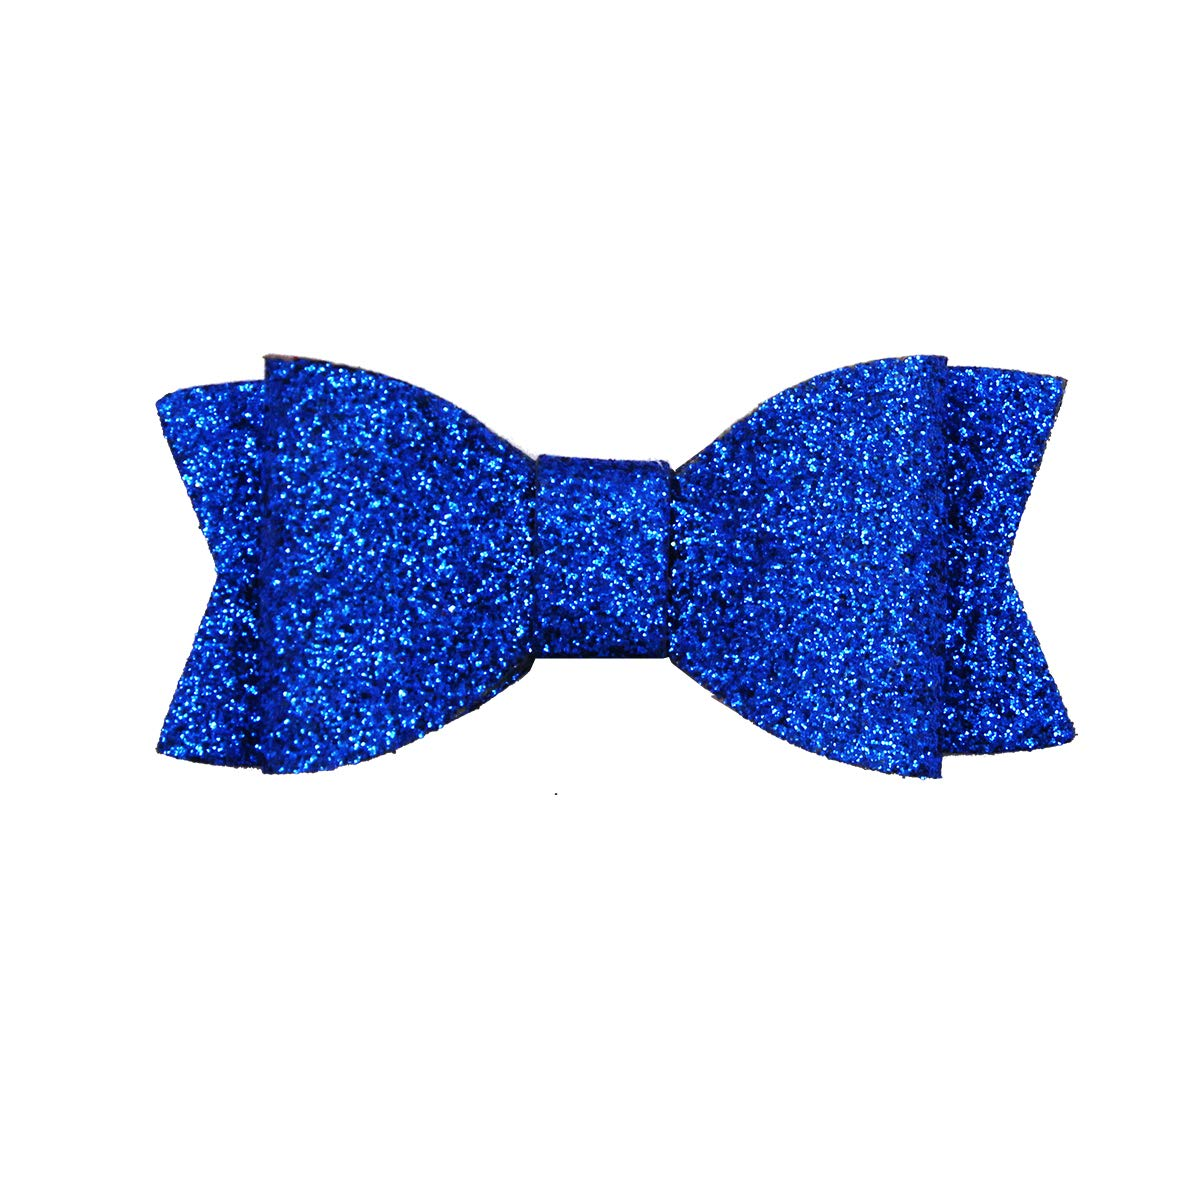 30PCS 2.75 Baby Girls Pigtail Bows Sparkly Sequin Glitter Hair Bows With Alligator Clips Hair Barrettes Accessory for Girls Toddlers Kids Teens